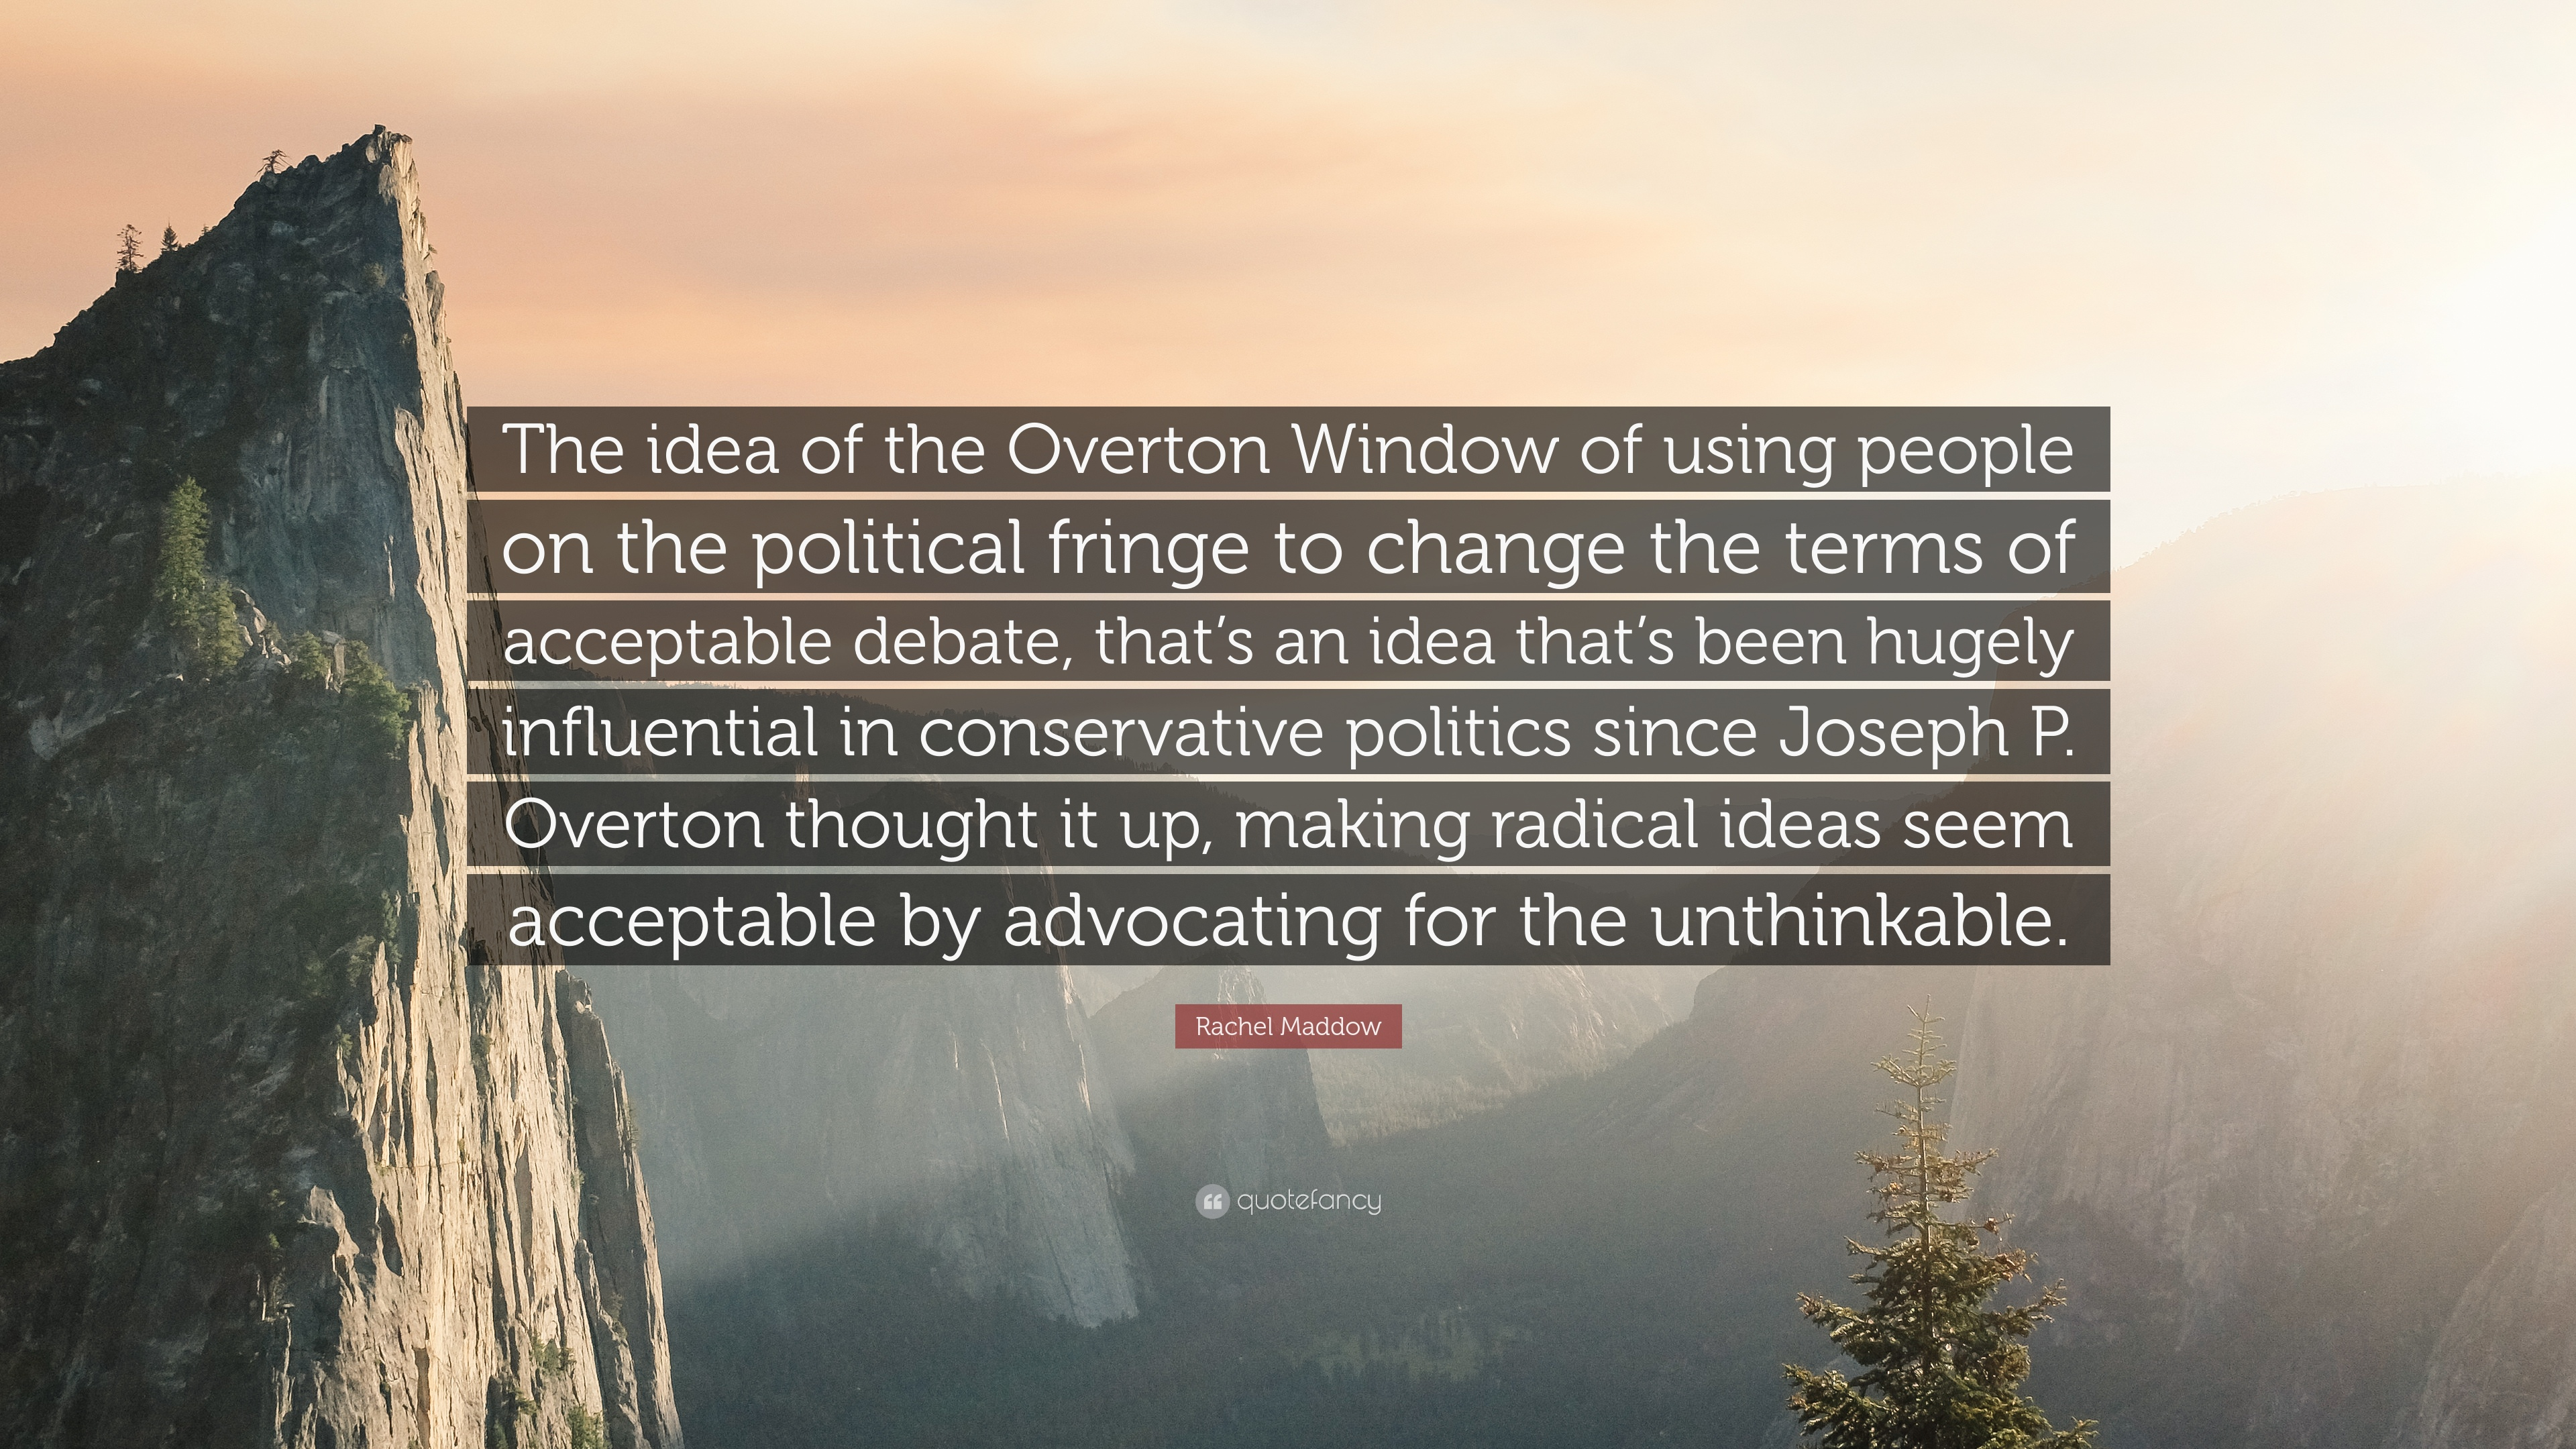 Rachel Maddow Quote The Idea Of The Overton Window Of Using People On The Political Fringe To Change The Terms Of Acceptable Debate That S 7 Wallpapers Quotefancy